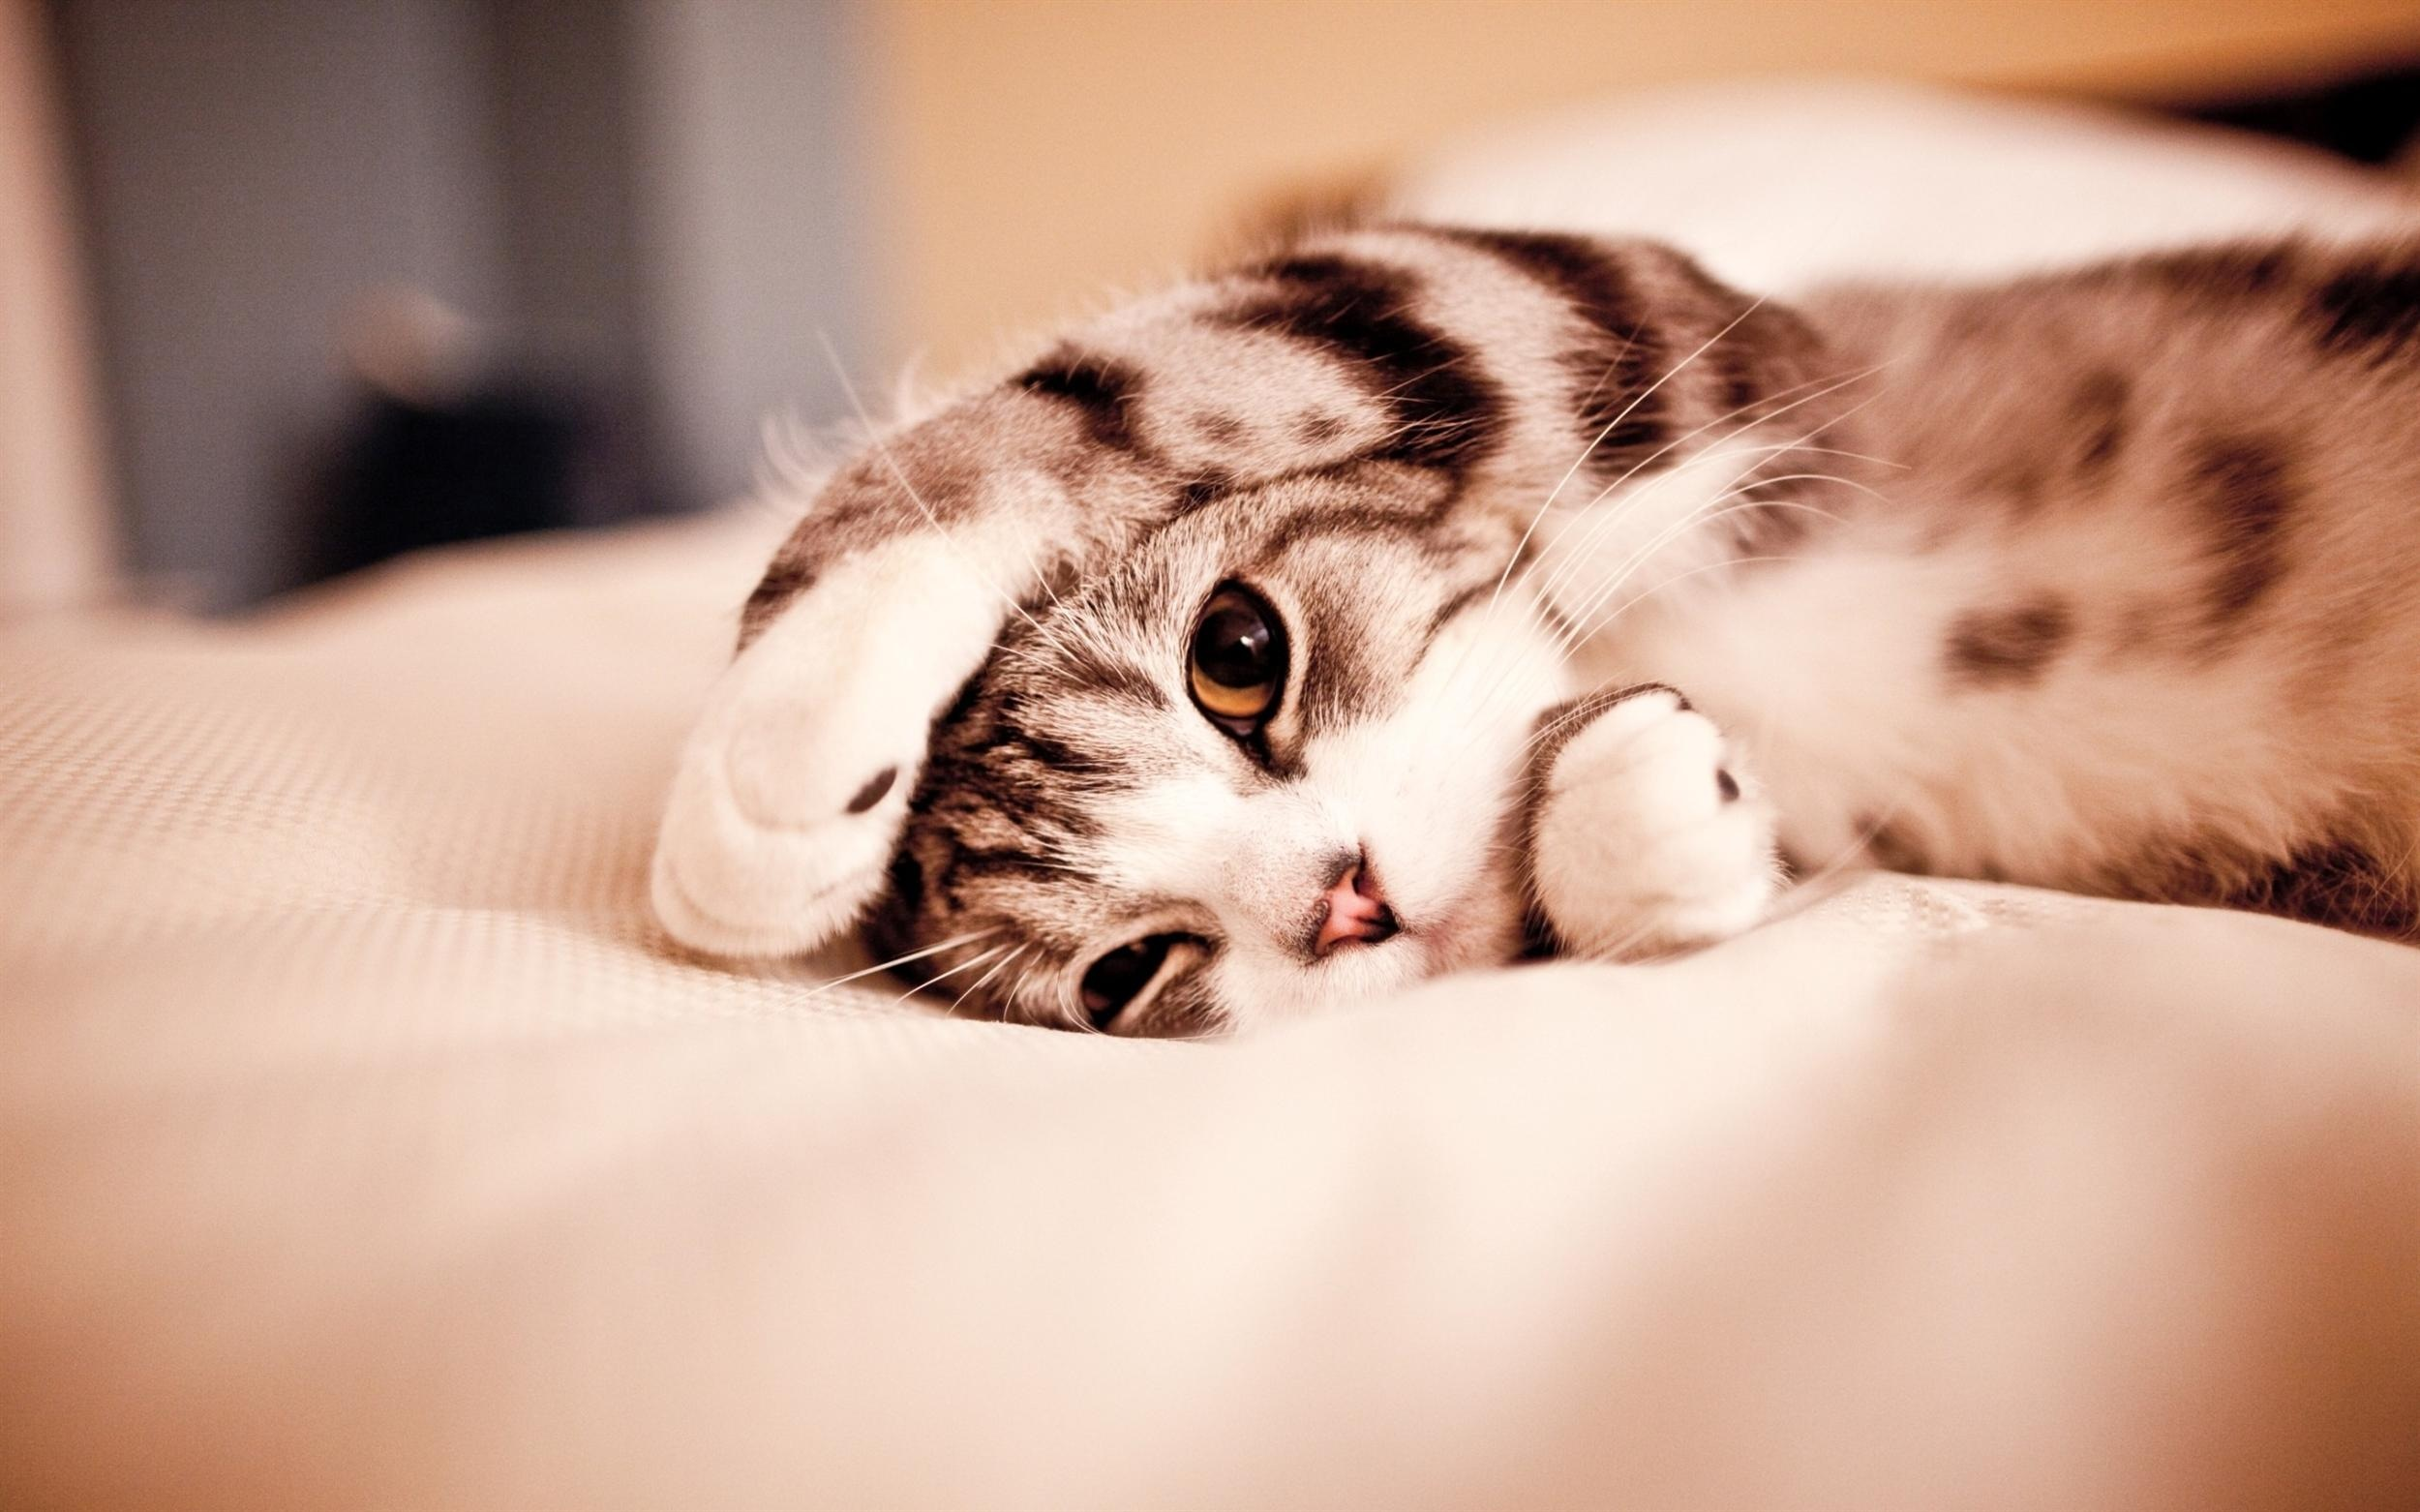 Cute Cat Sleep Wallpaper Desktop 5425 Wallpaper High Resolution 2500x1562